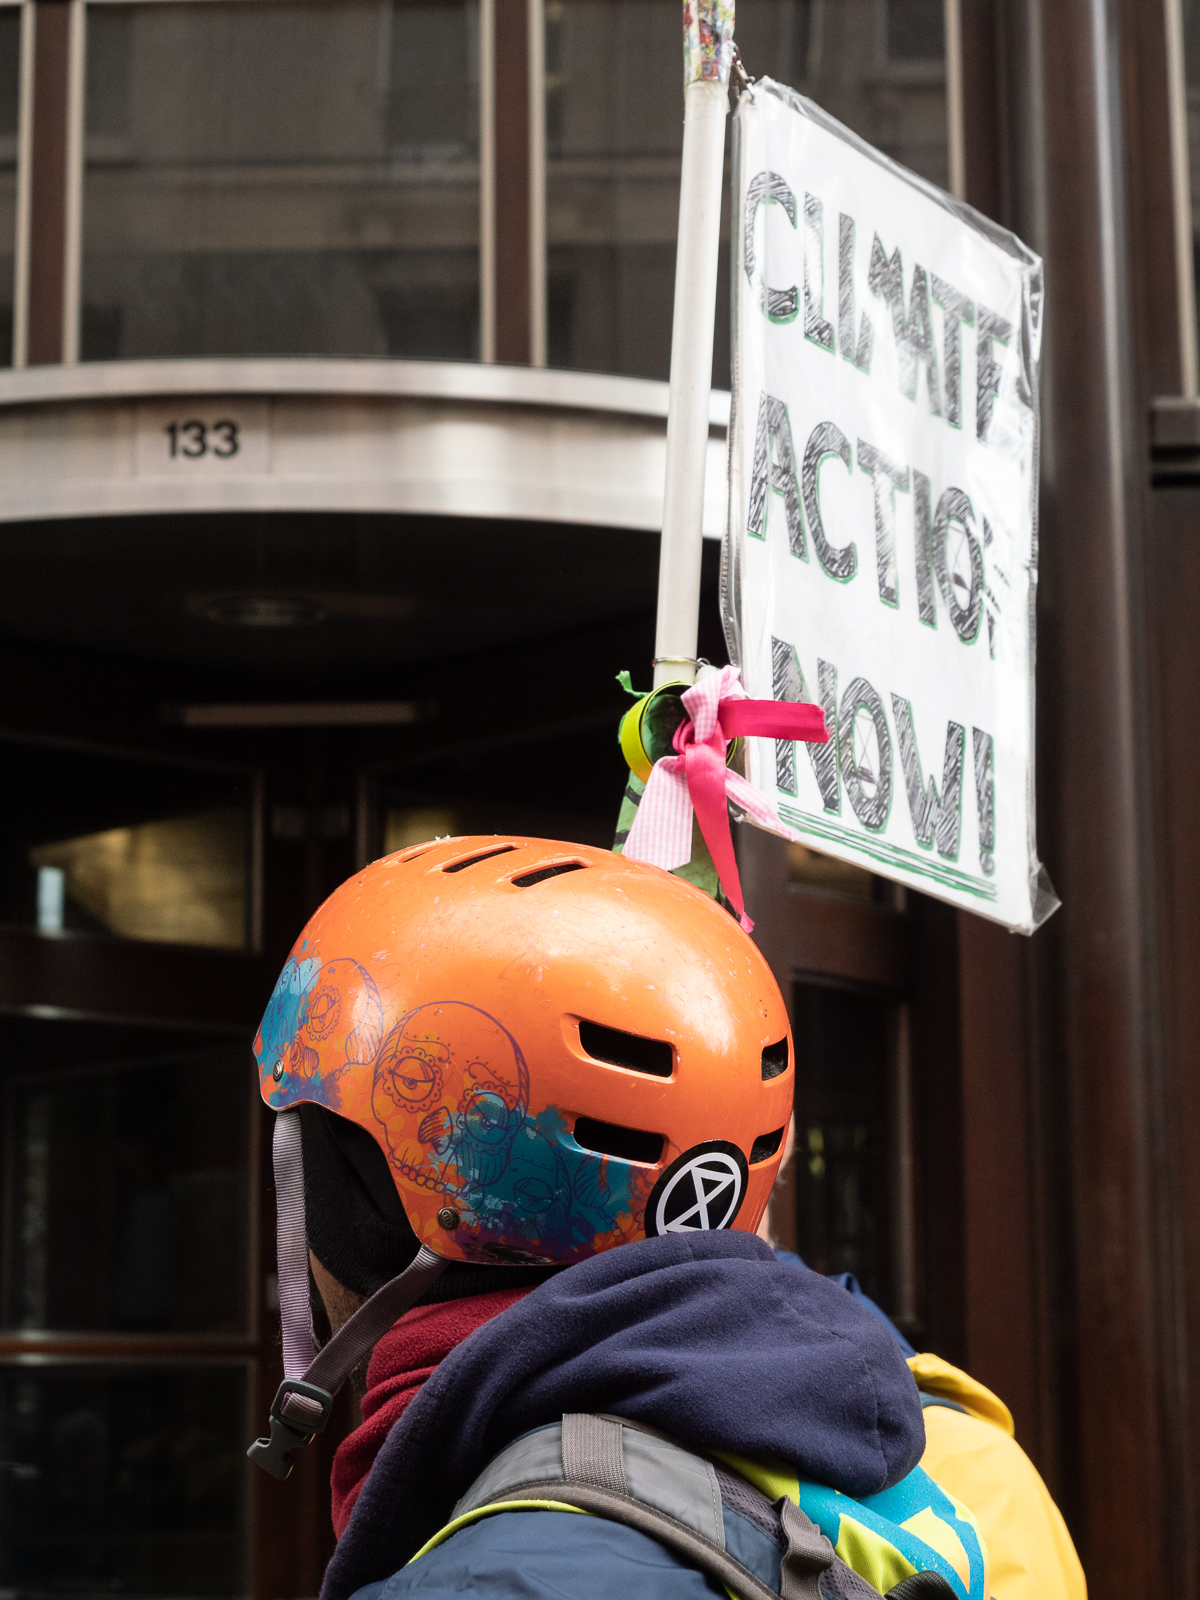 A protestor with the Extinction Rebellion logo on his helmet outside the offices of Goldman Sachs International at 133 Fleet St.